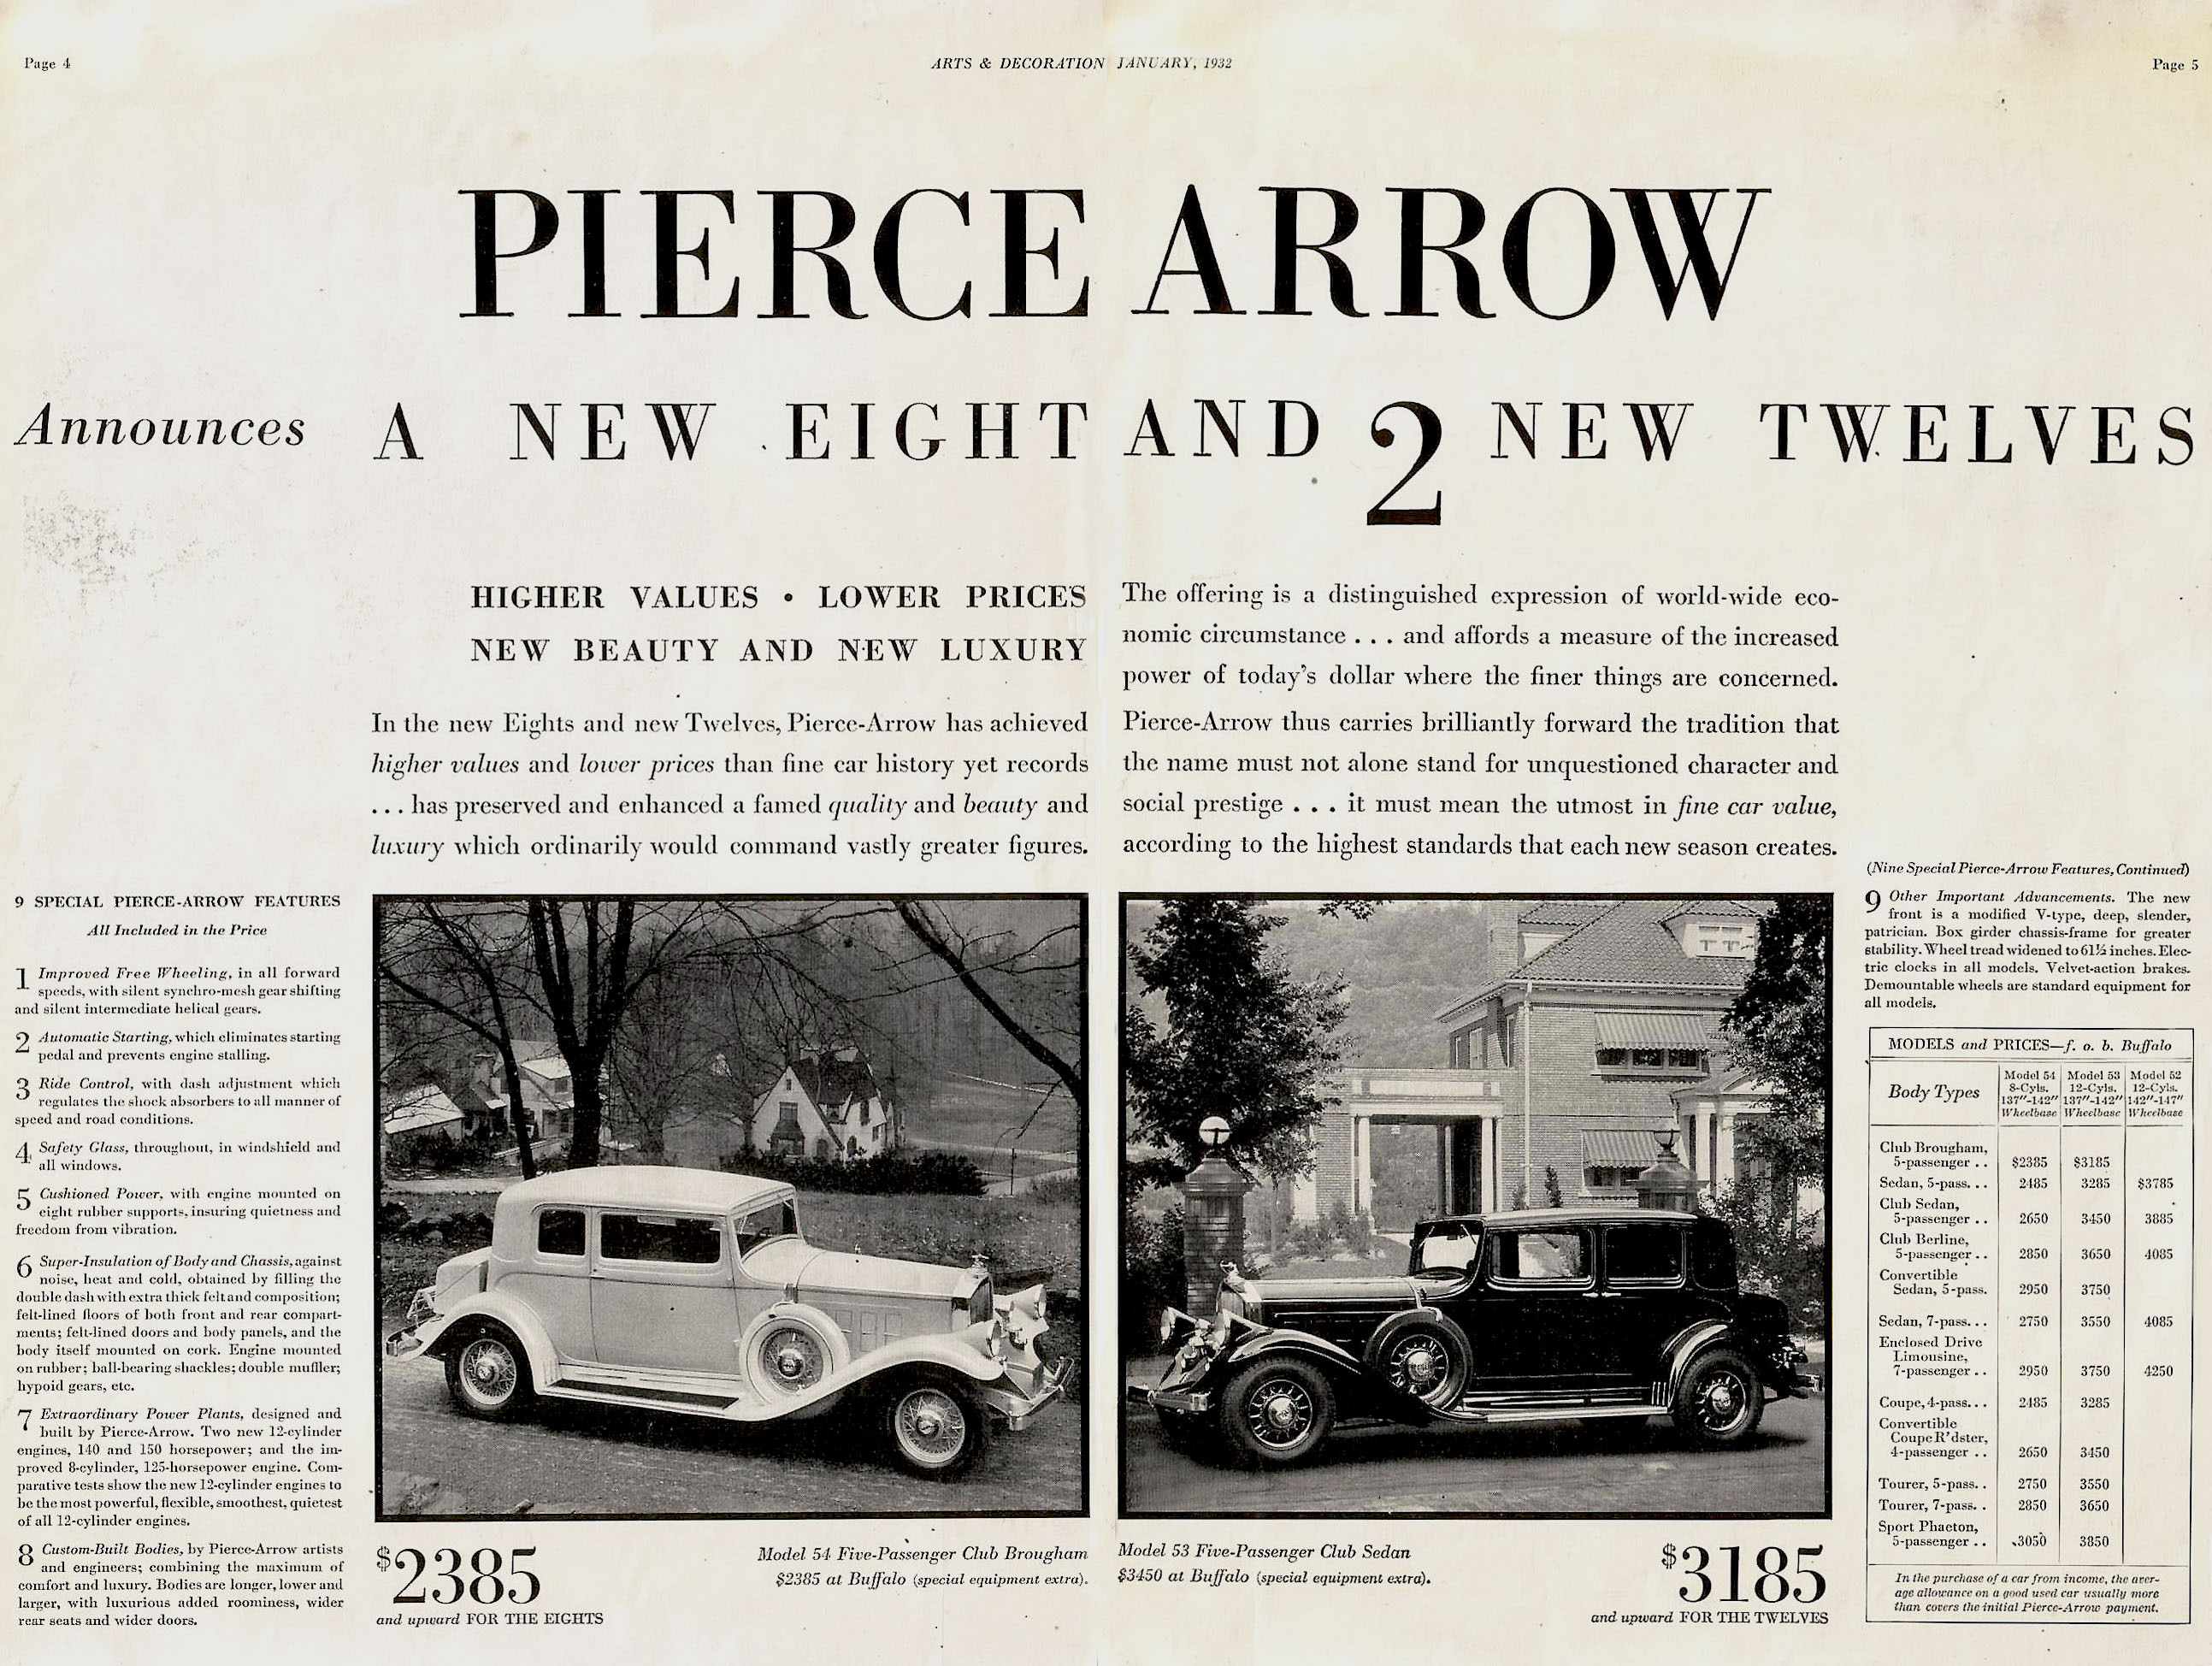 Un auto de prestigio: Pierce-Arrow